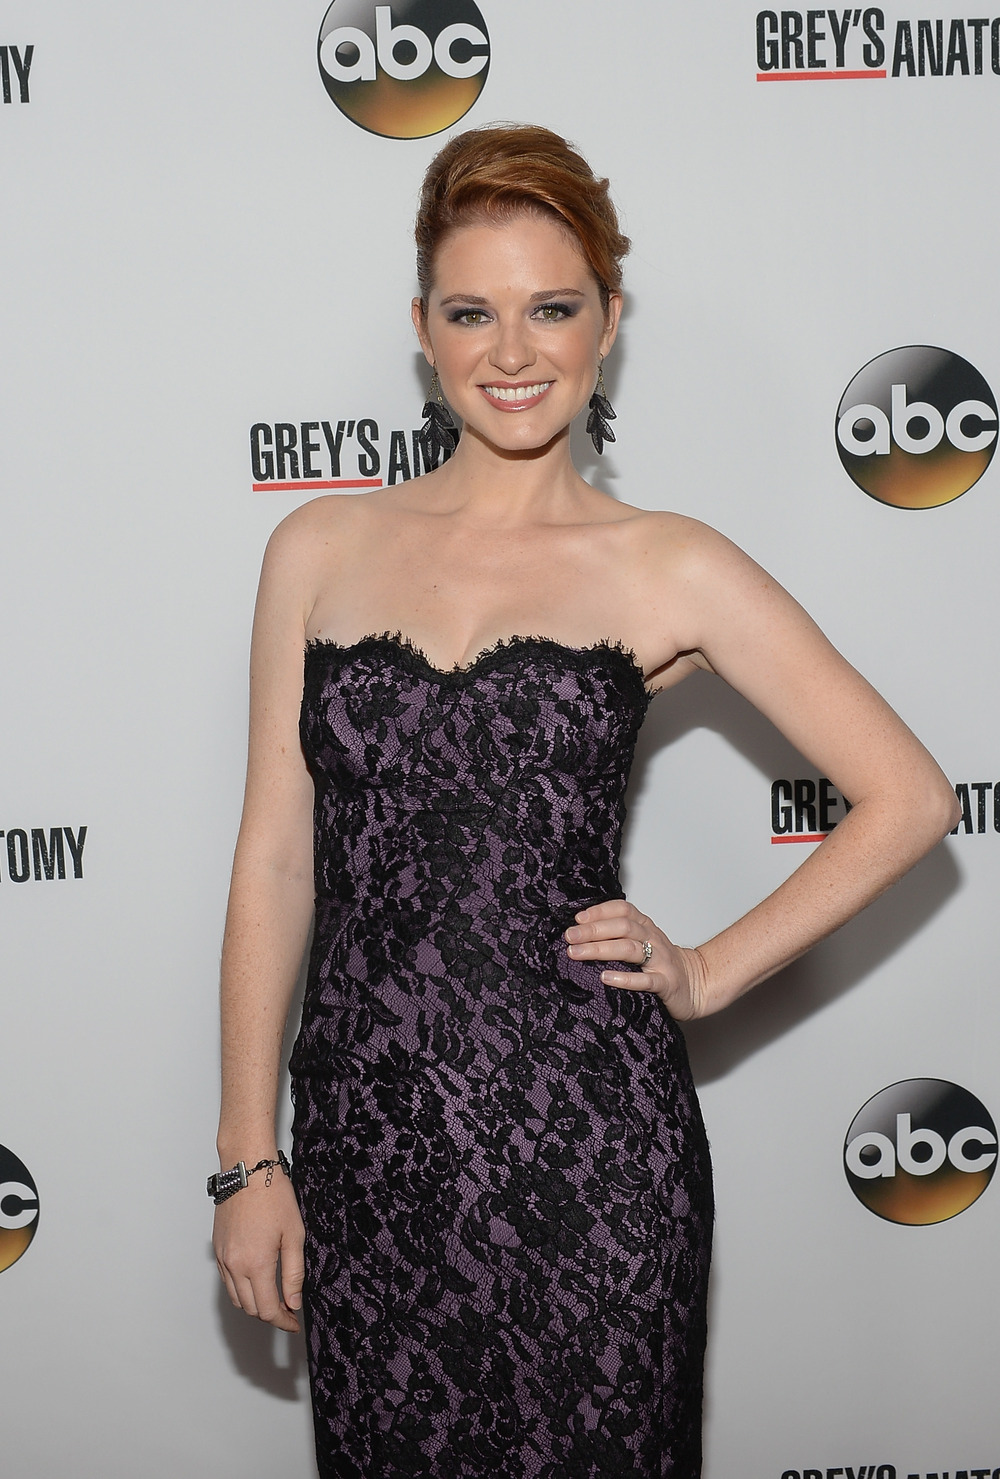 Grey's Anatomy's Sarah Drew Recording New Christmas Album With Reindeer Tribe